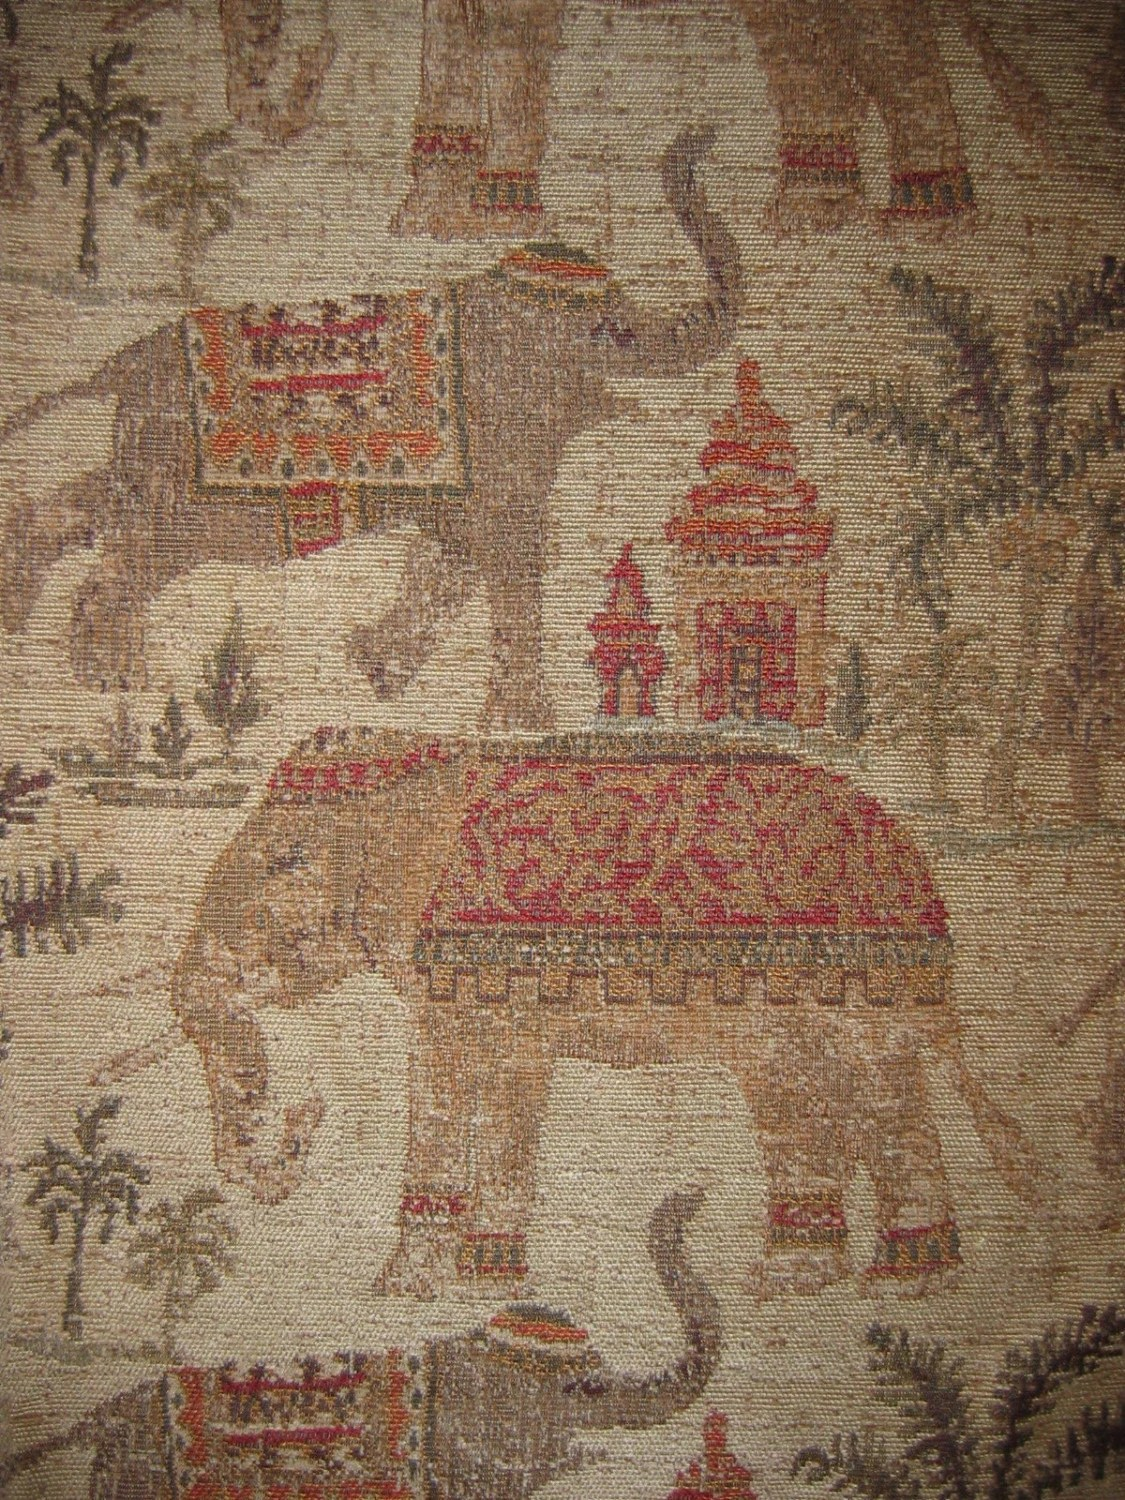 animal skin chair covers simple diy woven upholstery fabric dancing elephants chenille 1yd by aleazim